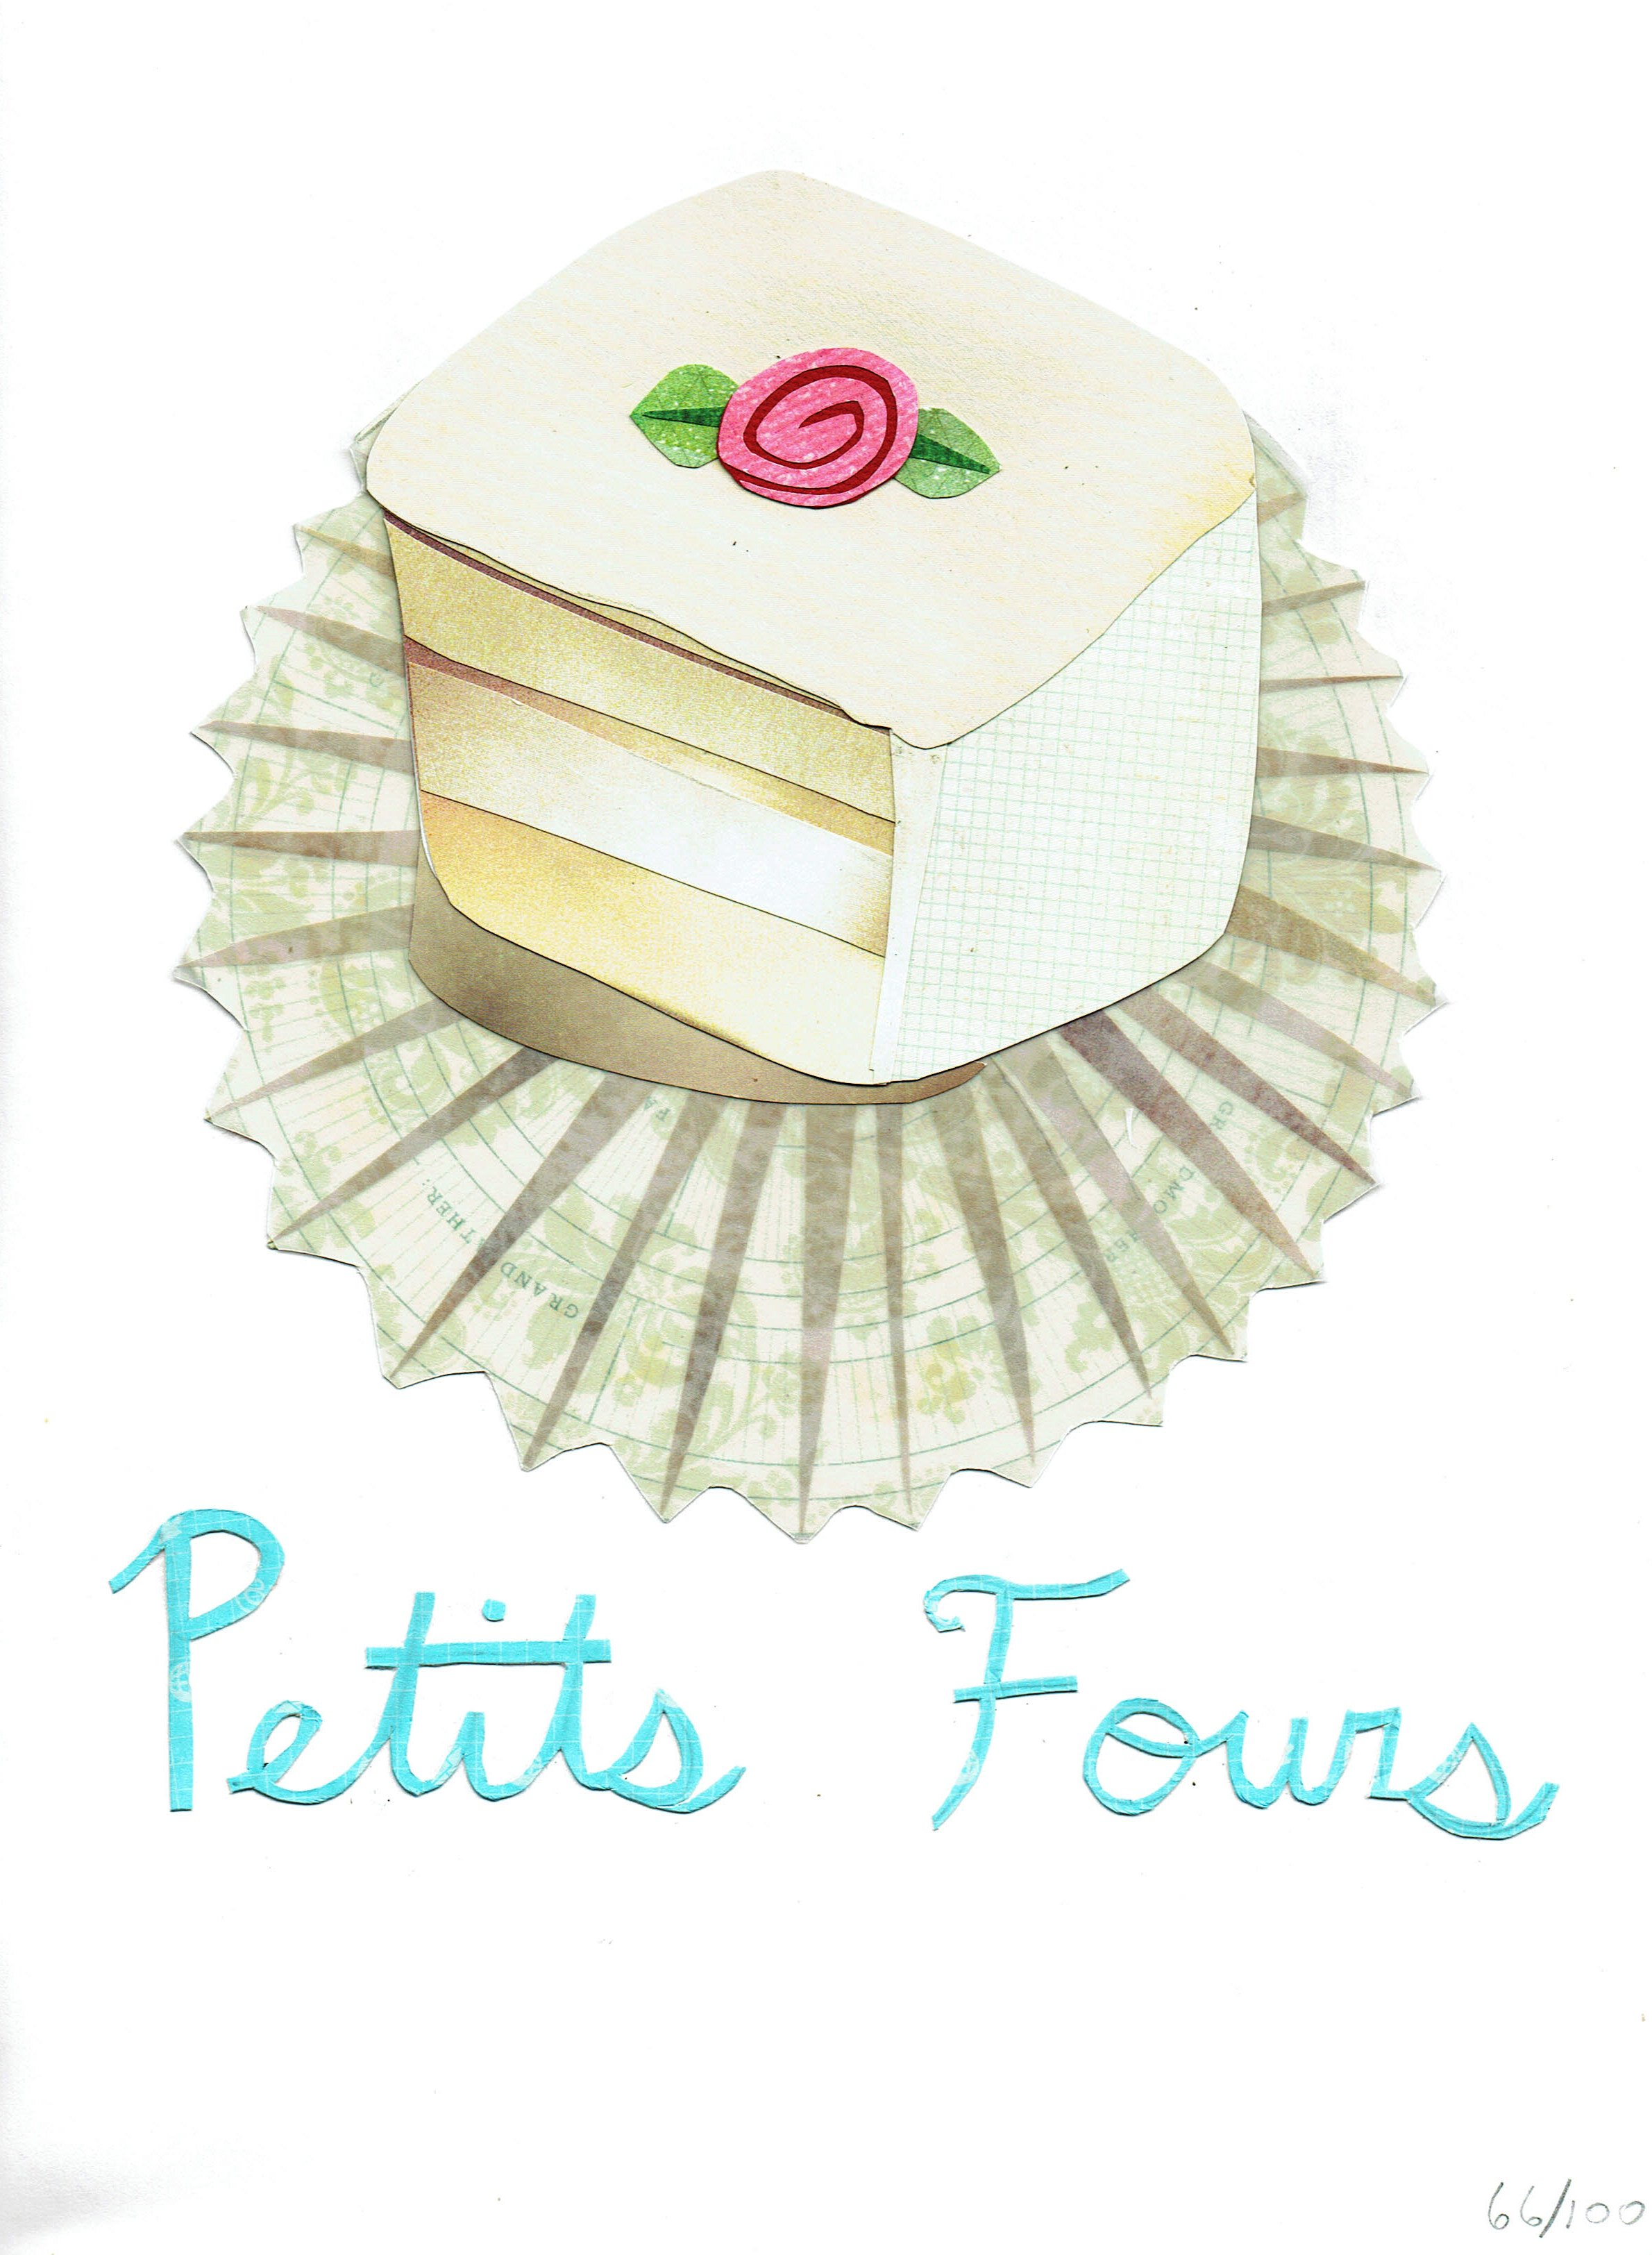 Day 66 - Petits Fours